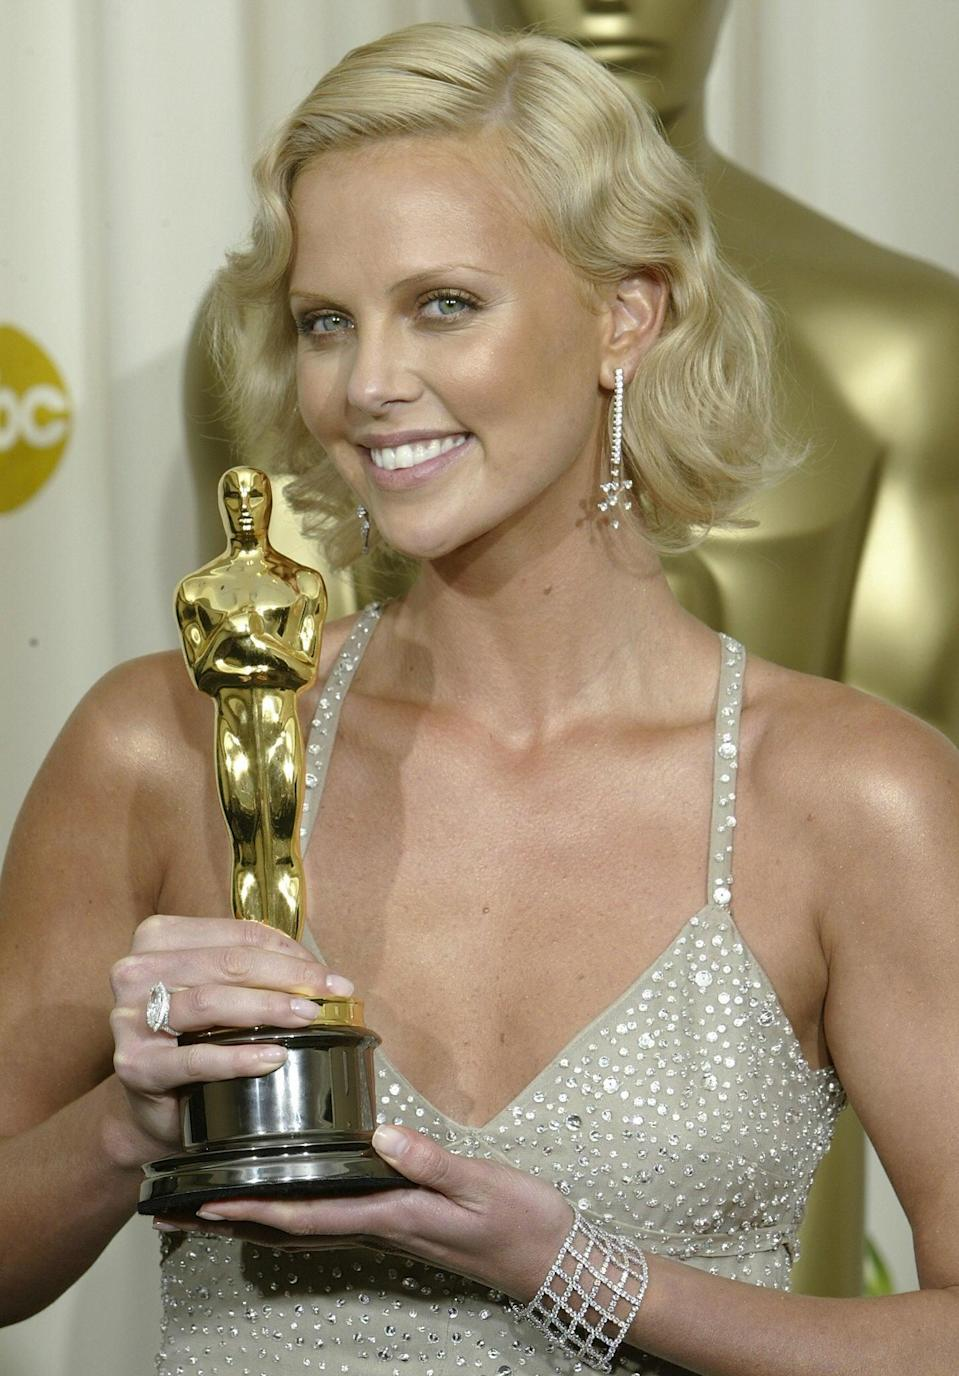 "<p><a class=""link rapid-noclick-resp"" href=""https://www.popsugar.com/Charlize-Theron"" rel=""nofollow noopener"" target=""_blank"" data-ylk=""slk:Charlize Theron"">Charlize Theron</a> styled her bob haircut into fingerwaves at the Oscars in 2004. </p>"